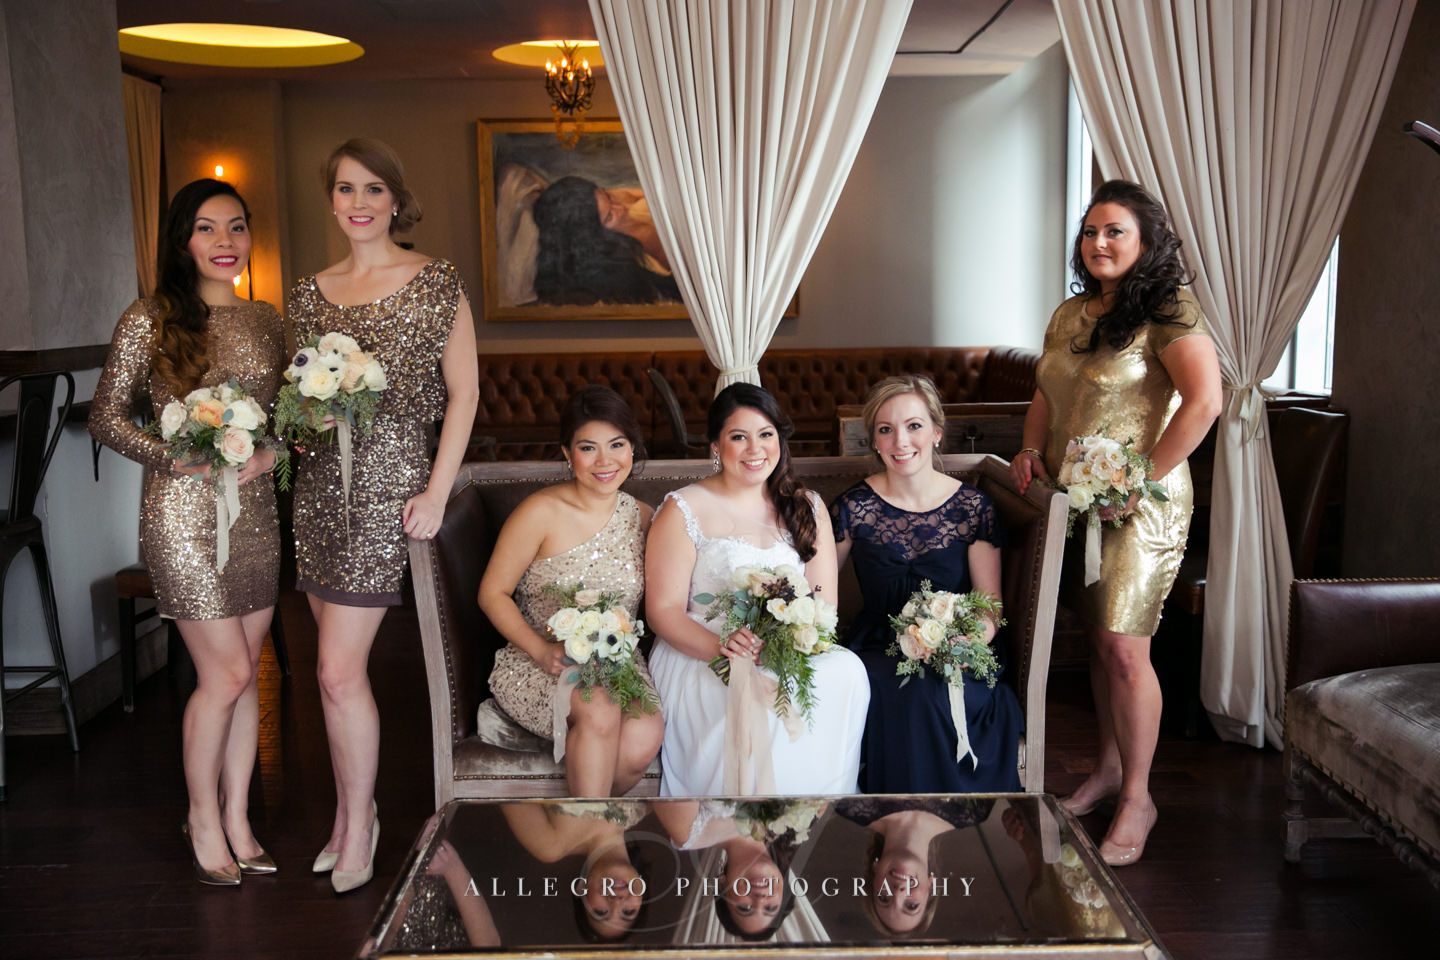 the girls (reflection) with lots of sparkle for this winter wedding  -photo by Allegro Photography